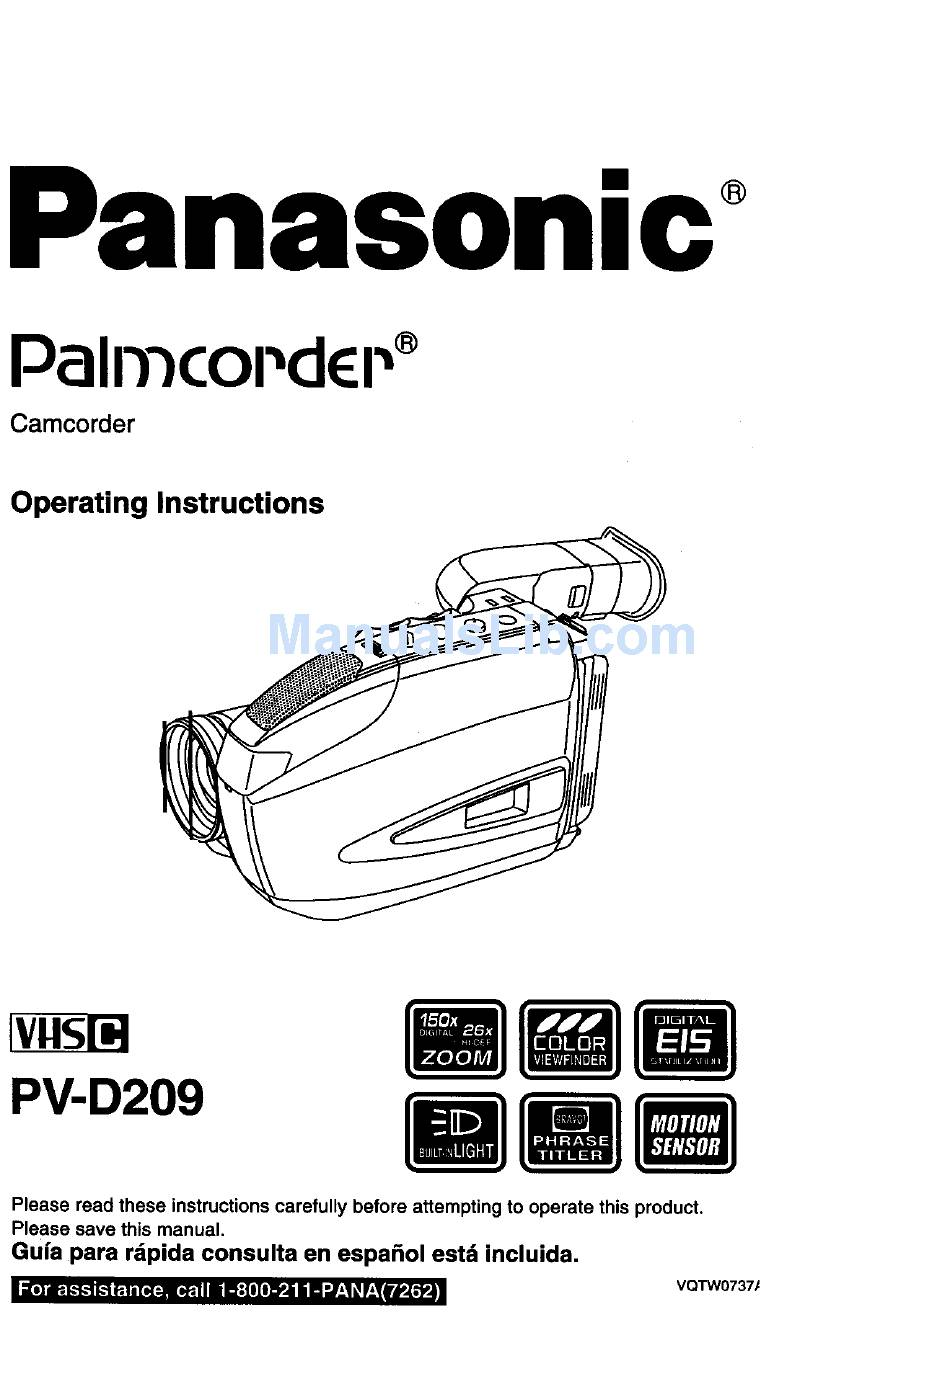 PANASONIC PALMCORDER PV-D209 OPERATING INSTRUCTIONS MANUAL